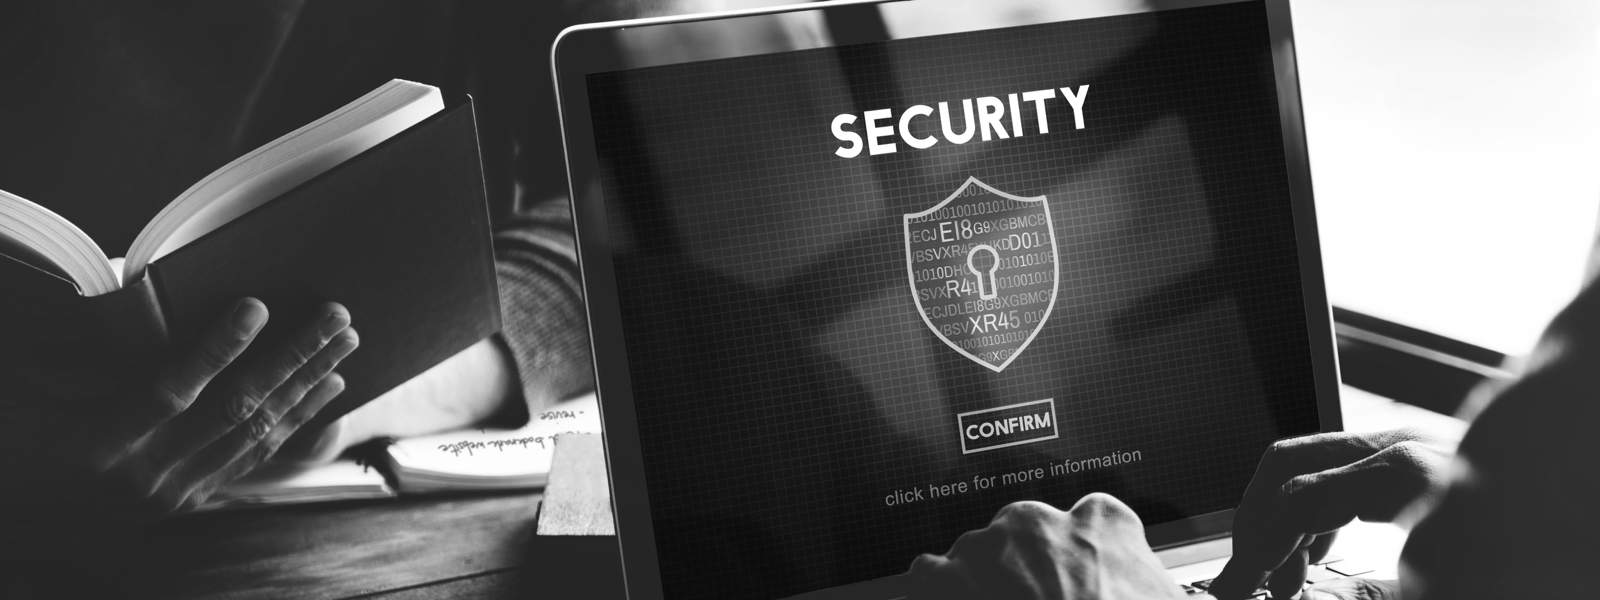 photo of person using laptop security software